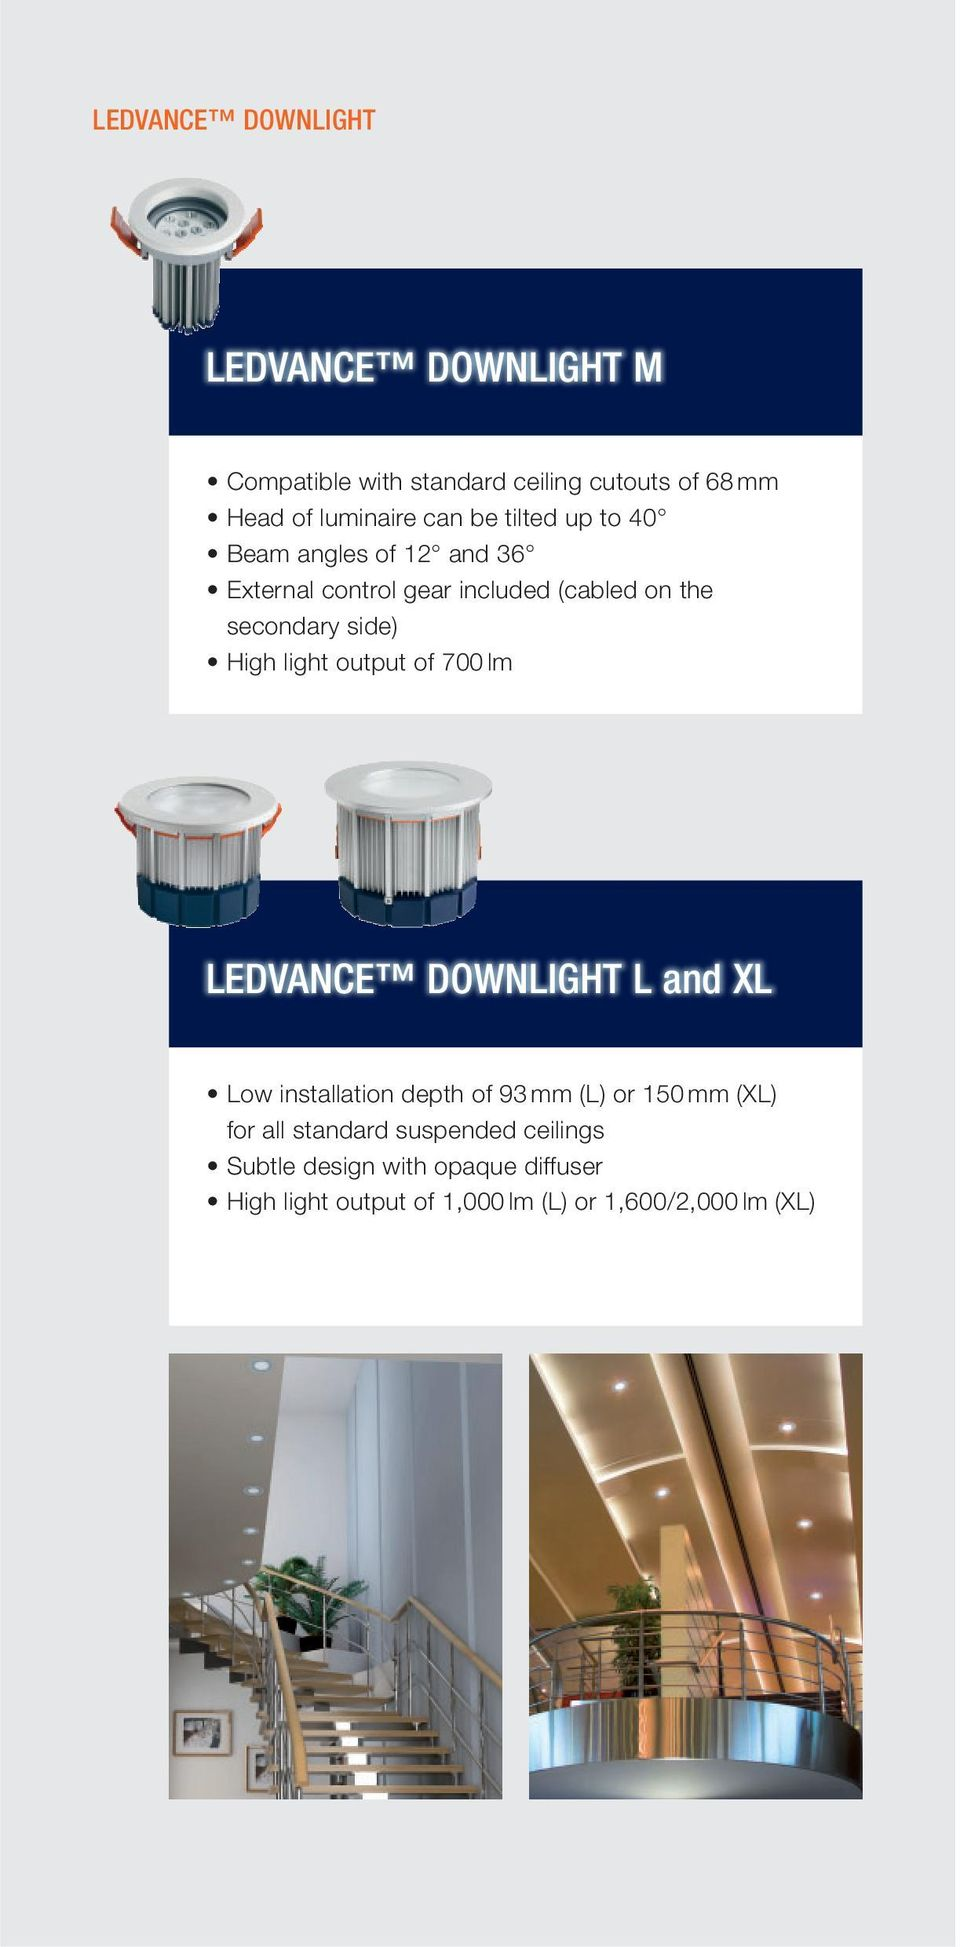 light output of 700 lm LEDVANCE DOWNLIGHT L and XL Low installation depth of 93 mm (L) or 150 mm (XL) for all